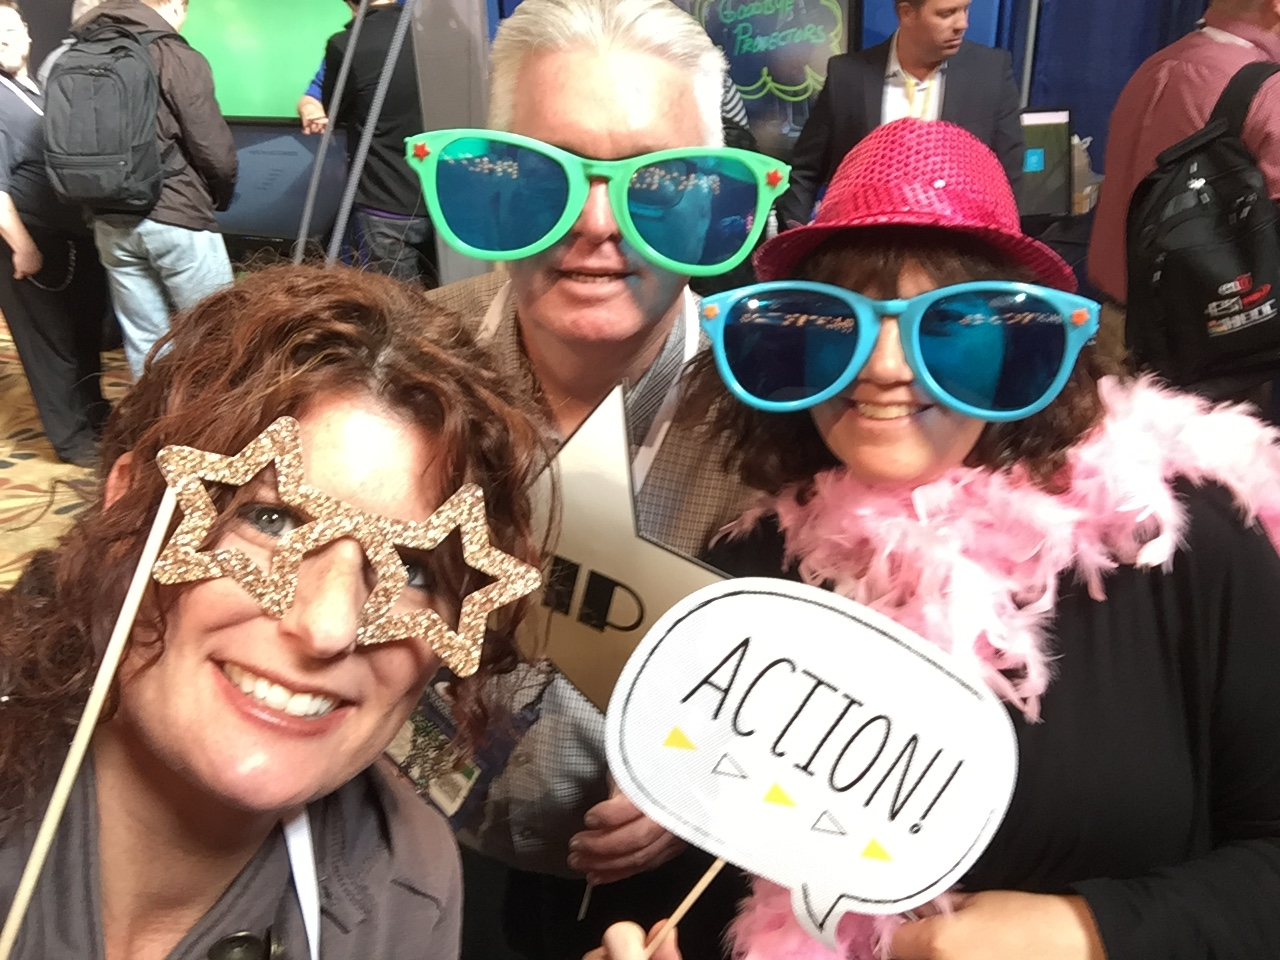 Kelli Suding, Jim Lambert, and Sandy Stabenfeldt posing with photo booth props